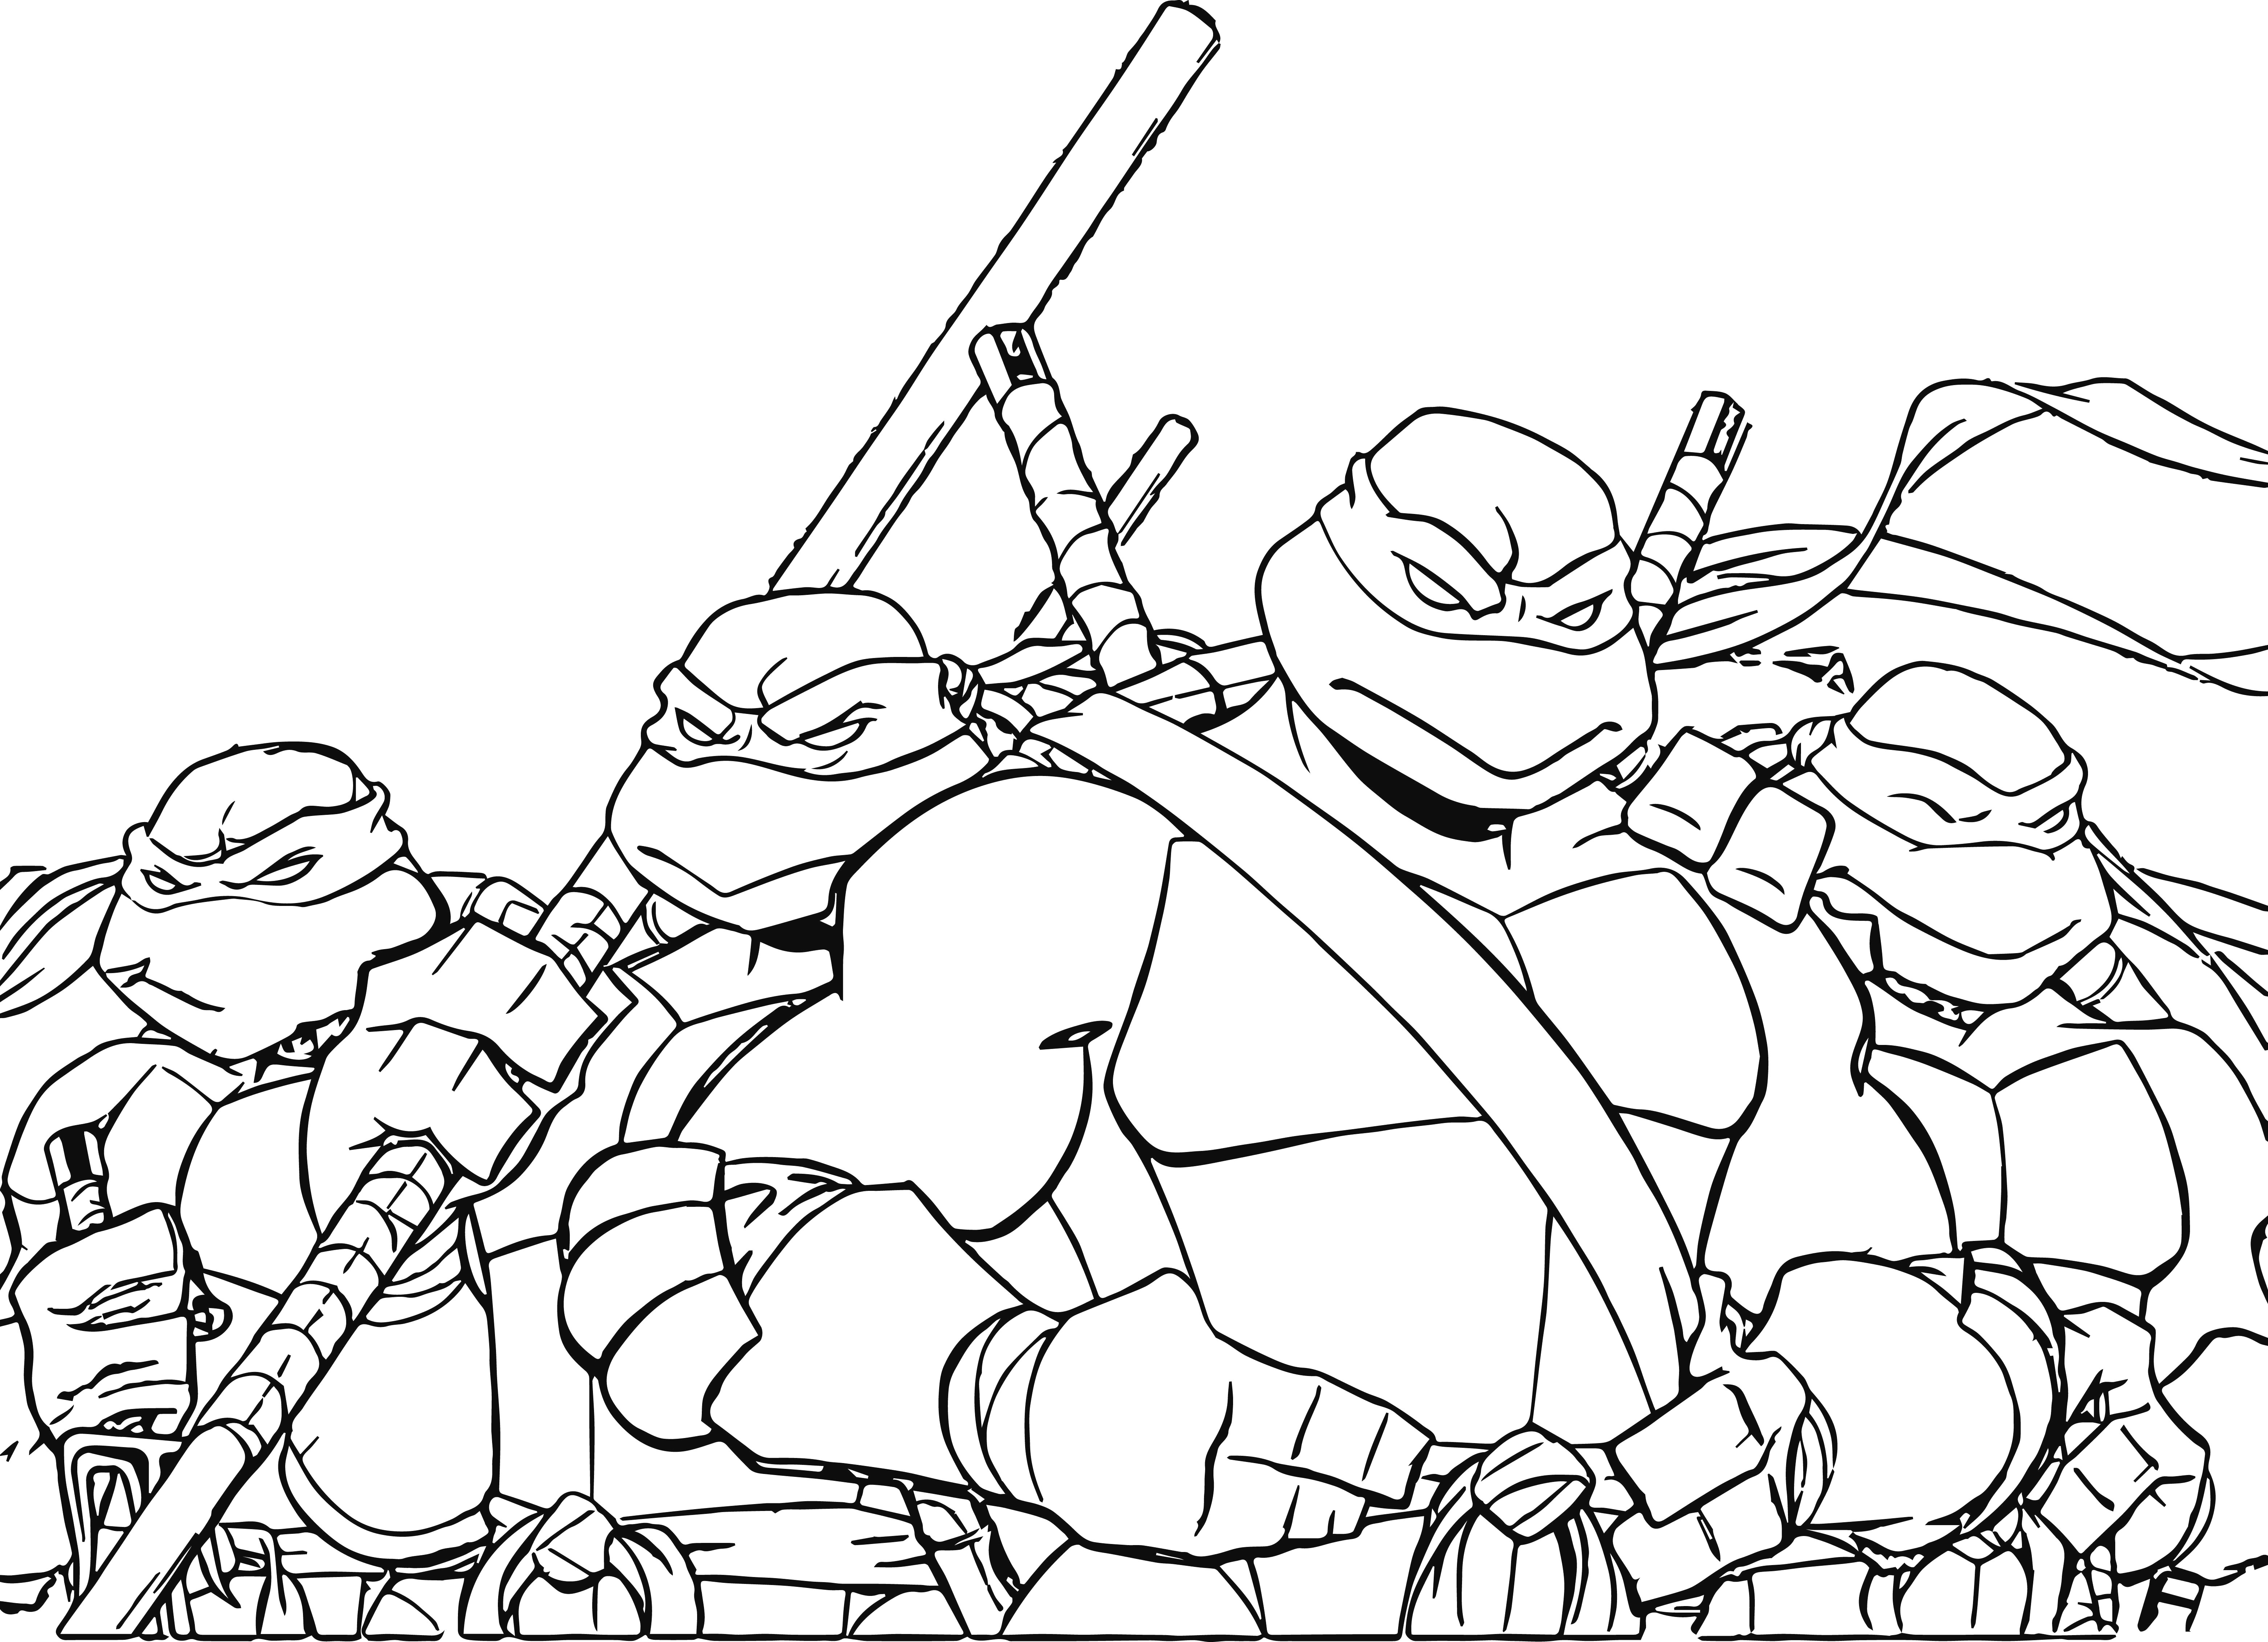 Teenage Mutant Ninja Turtles Pictures To Print Coloring Pages - Teenage Mutant Ninja Turtles Printables Free